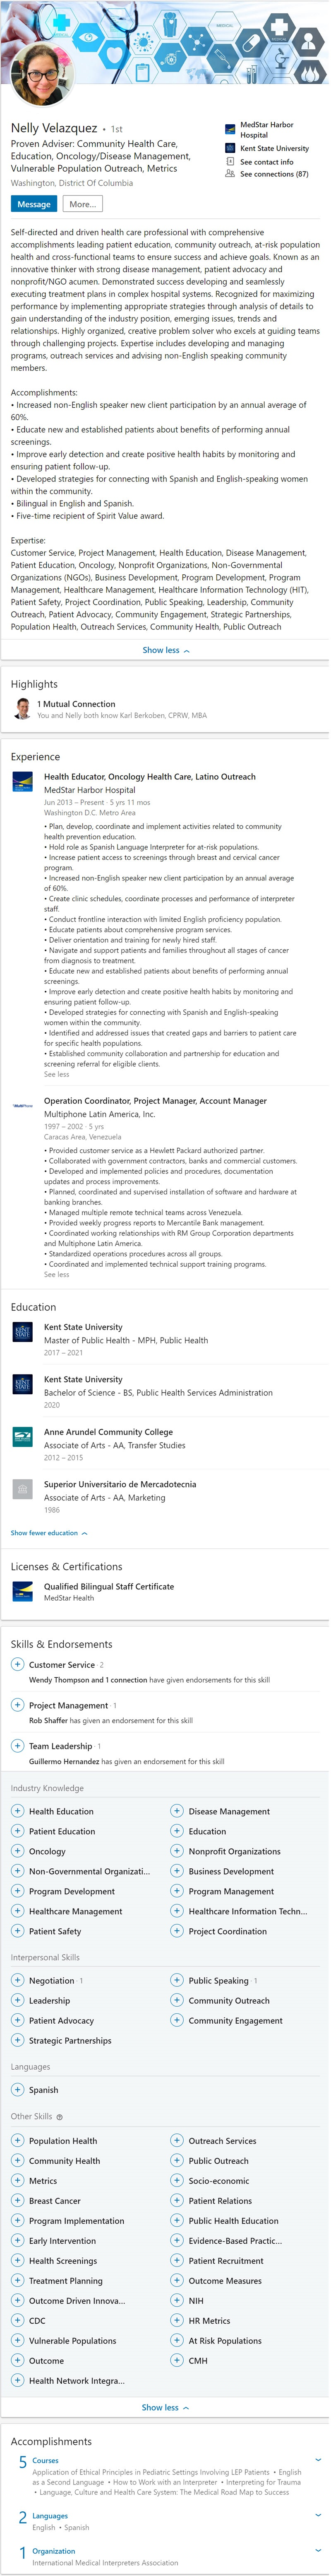 Sample Linkedin Profile example community health Latino education 2431